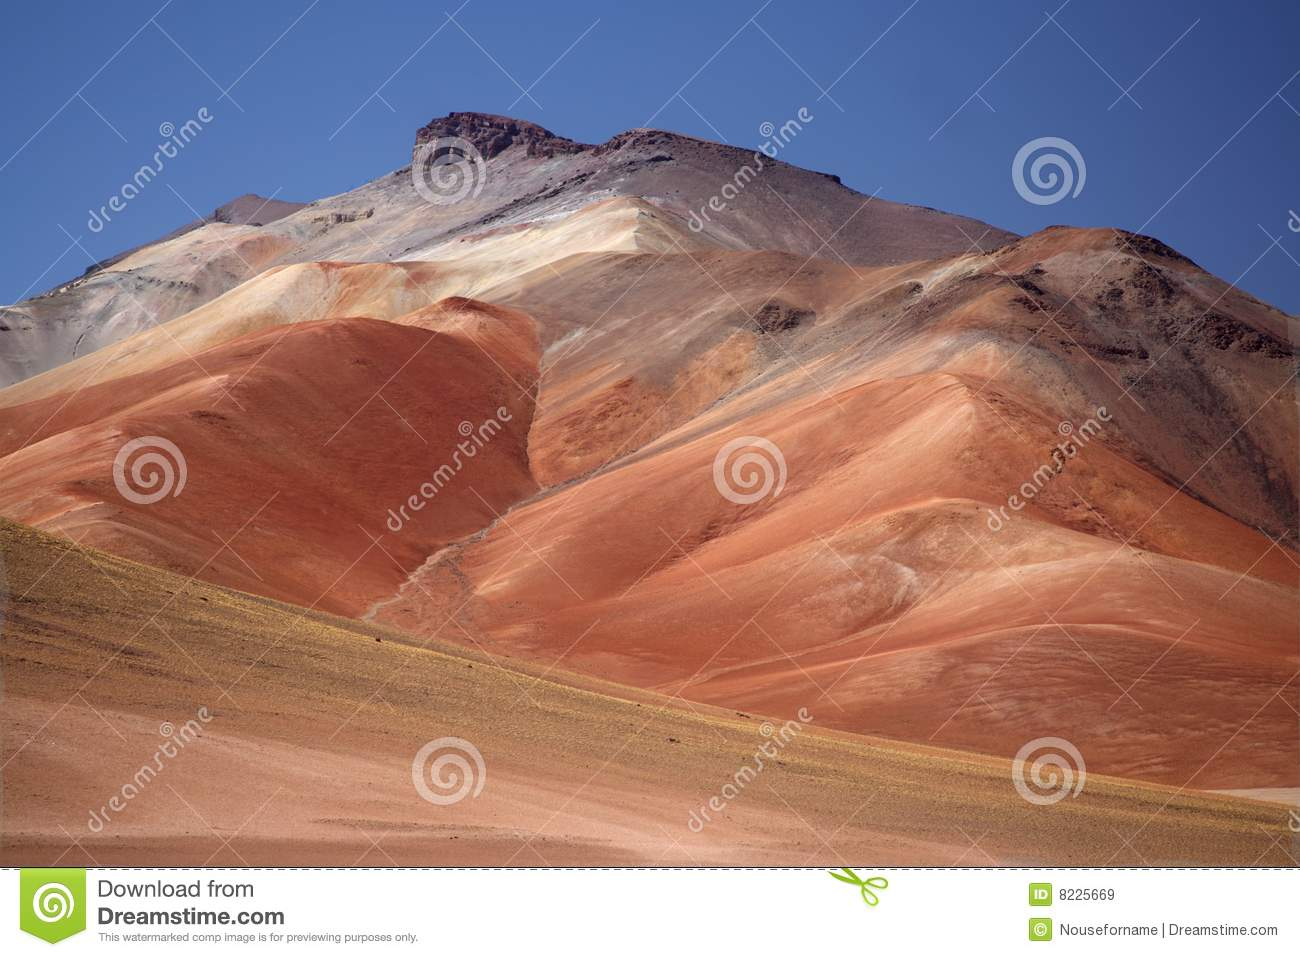 Multy-colored mountain in the Daly desert